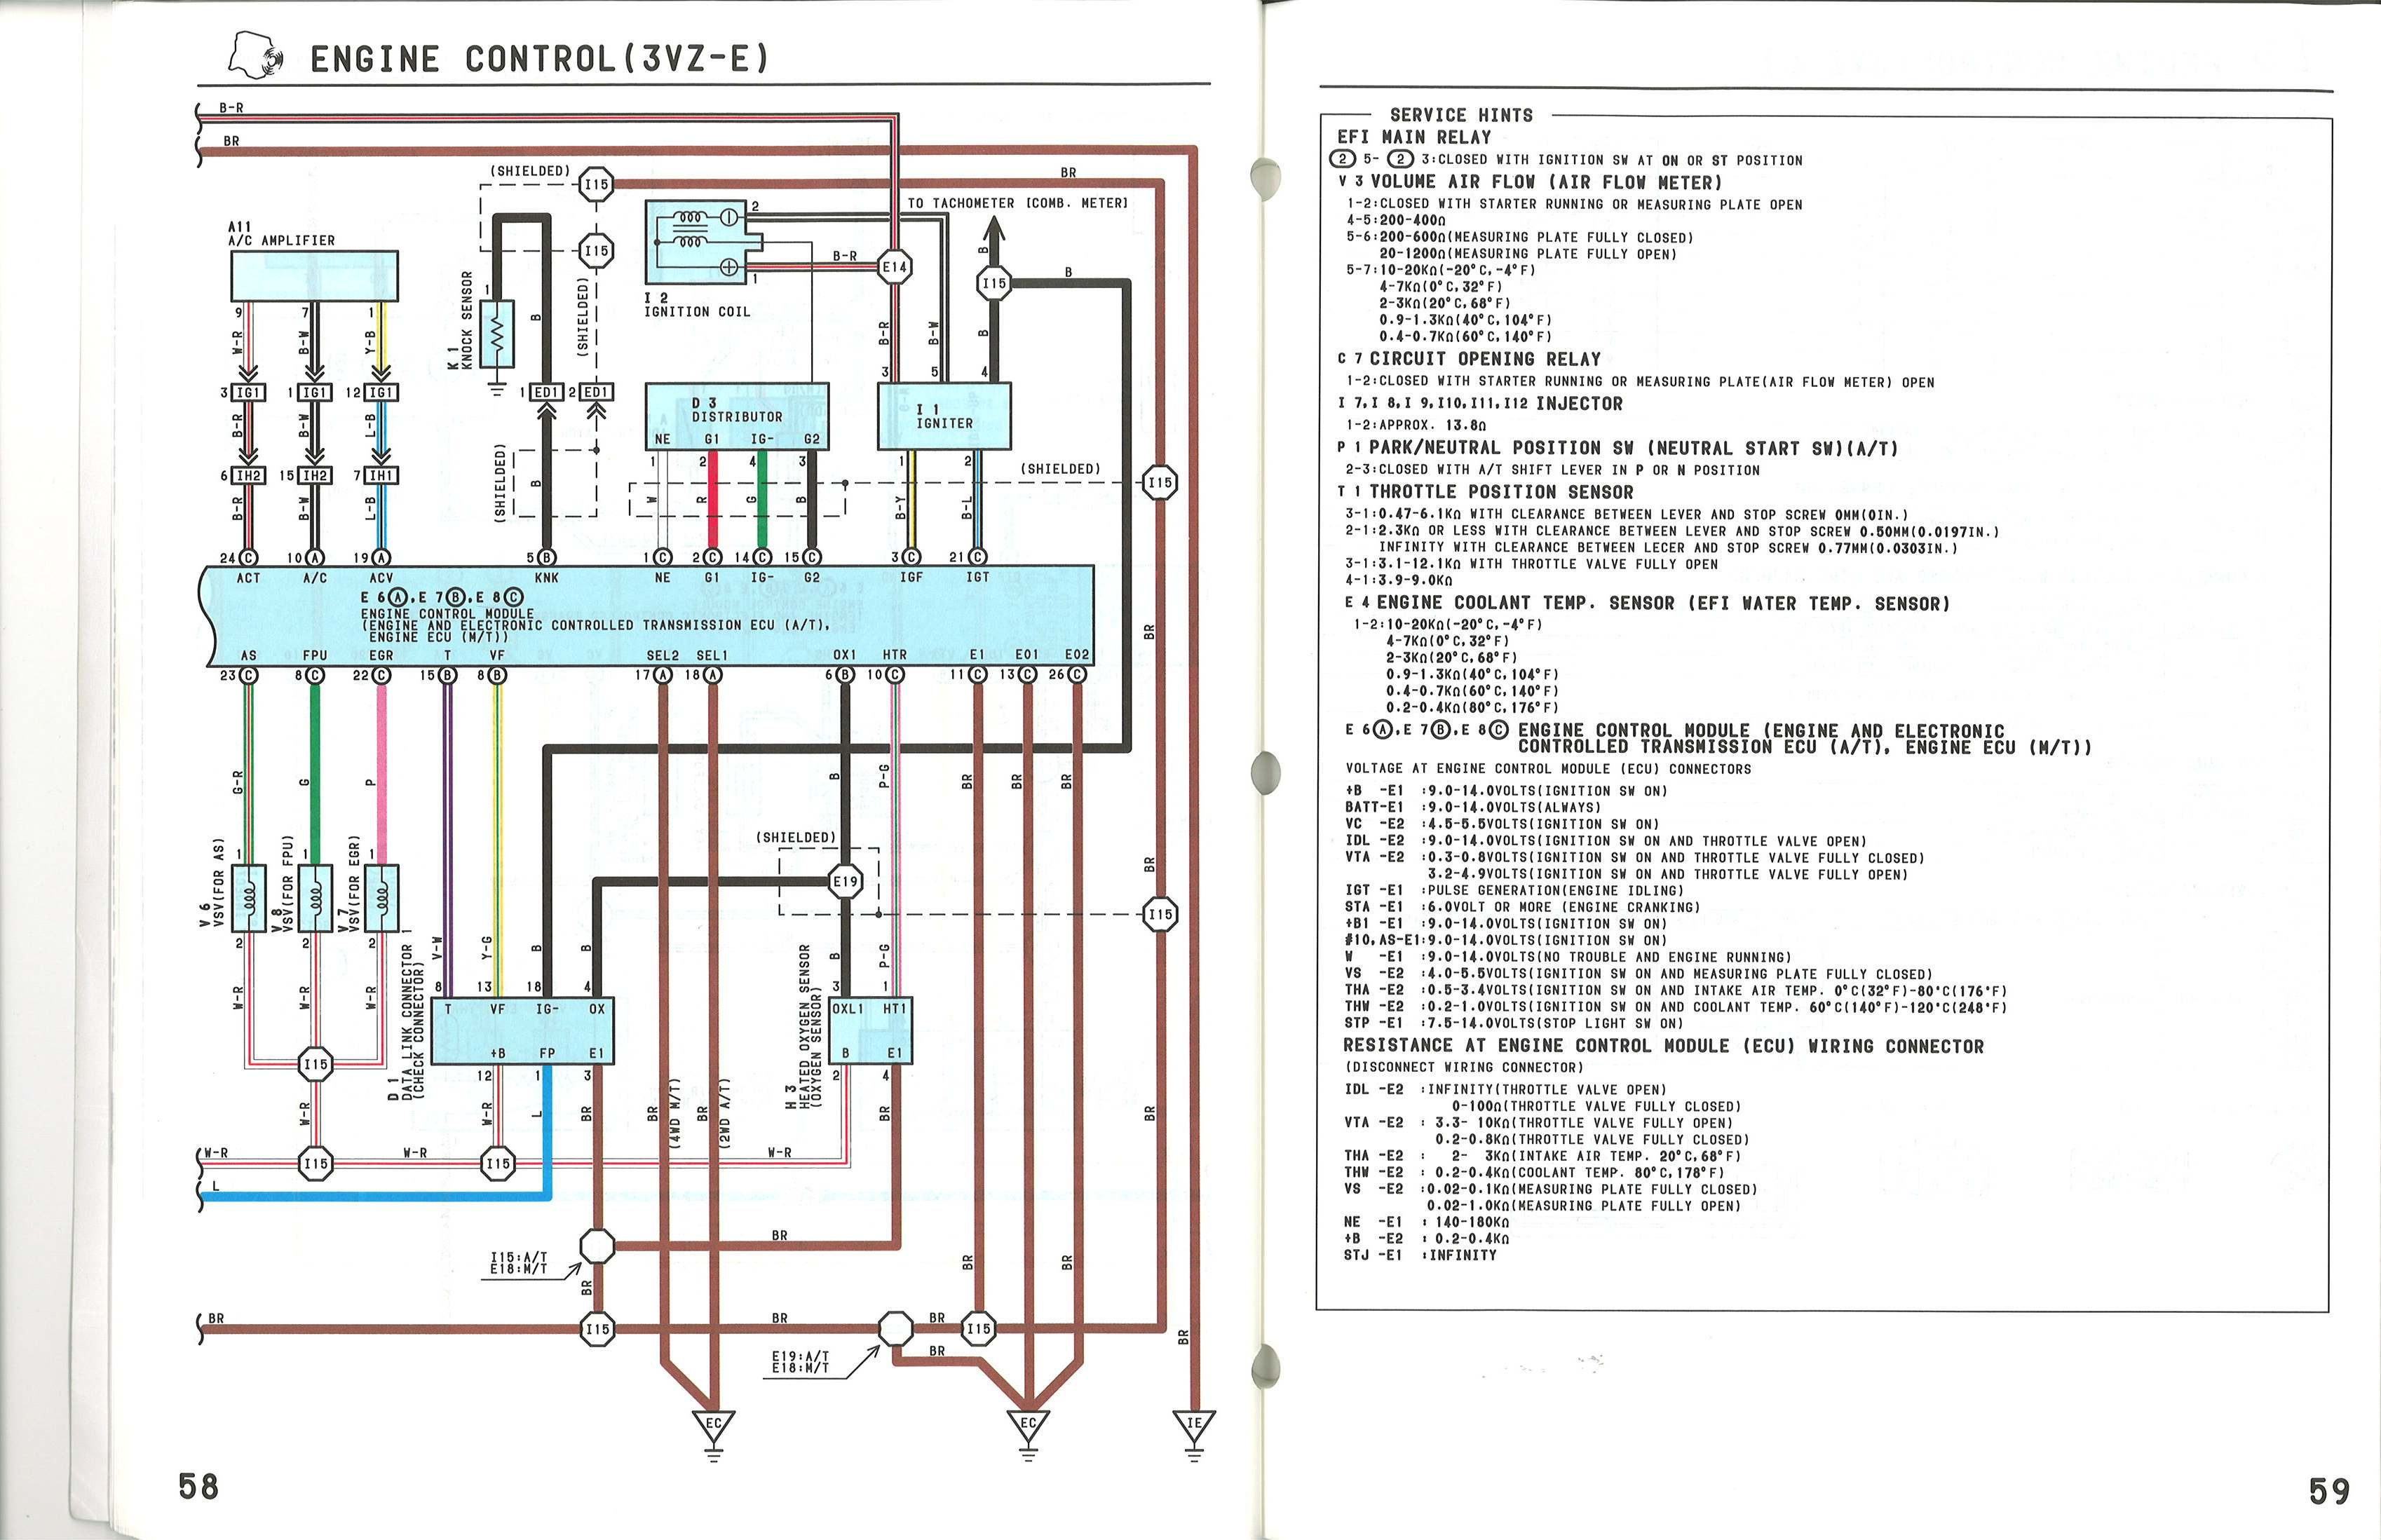 Engine_Control_3vze_3 knock sensor wiring diagram ecu wiring diagram \u2022 free wiring how to test knock sensor harness at gsmx.co